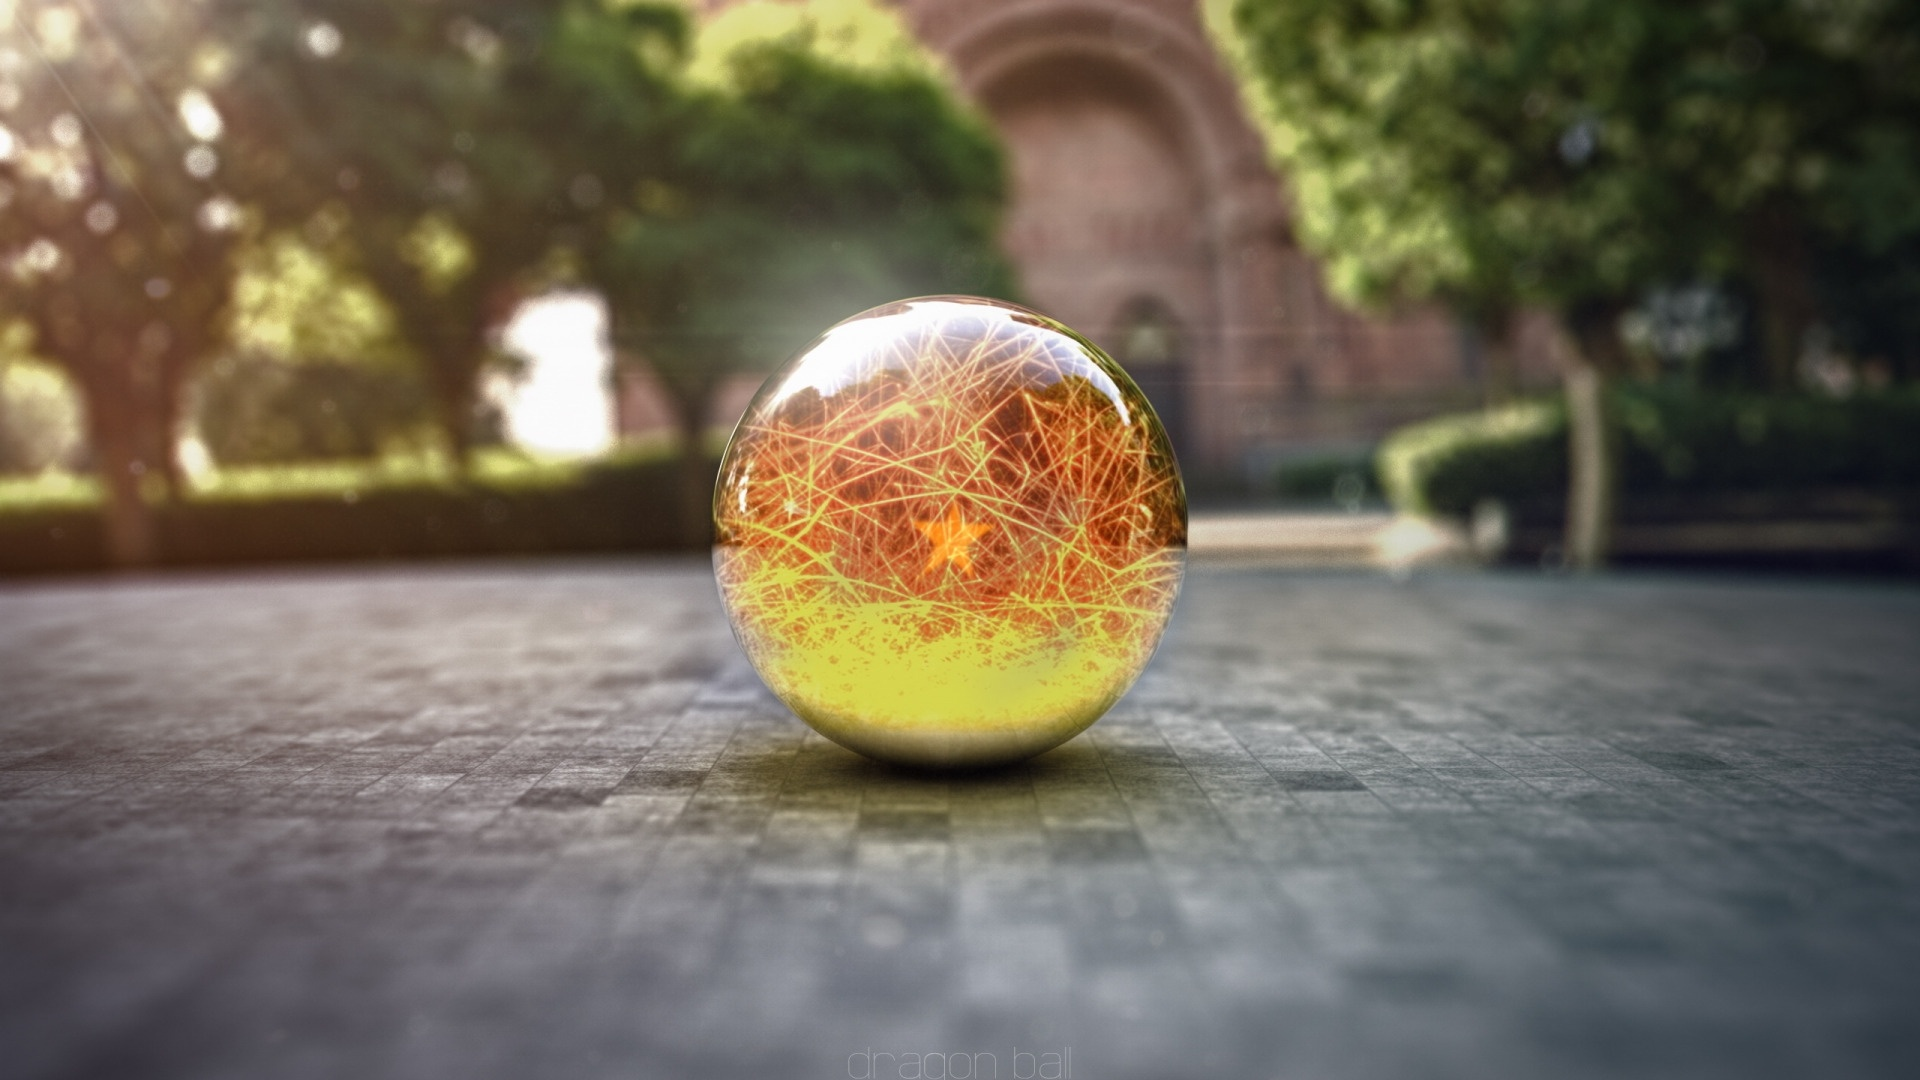 Ball Glass wallpaper for computer